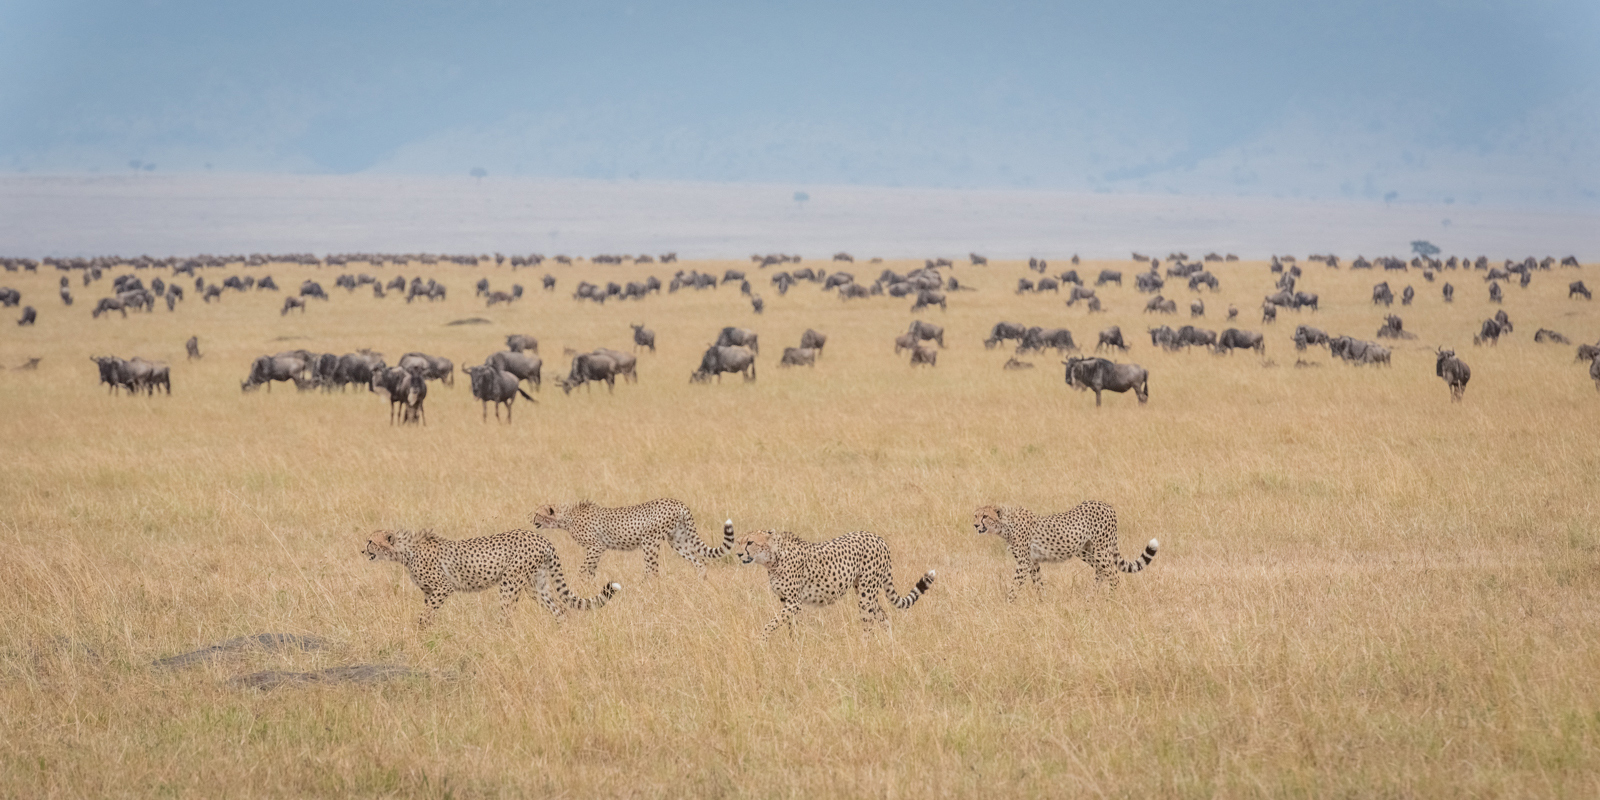 """A camouflaged coalition of cheetah in the Maasai Mara ©<a href=""""http://www.coopernaturephotos.com/"""" target=""""_blank"""">Neal Cooper</a>"""